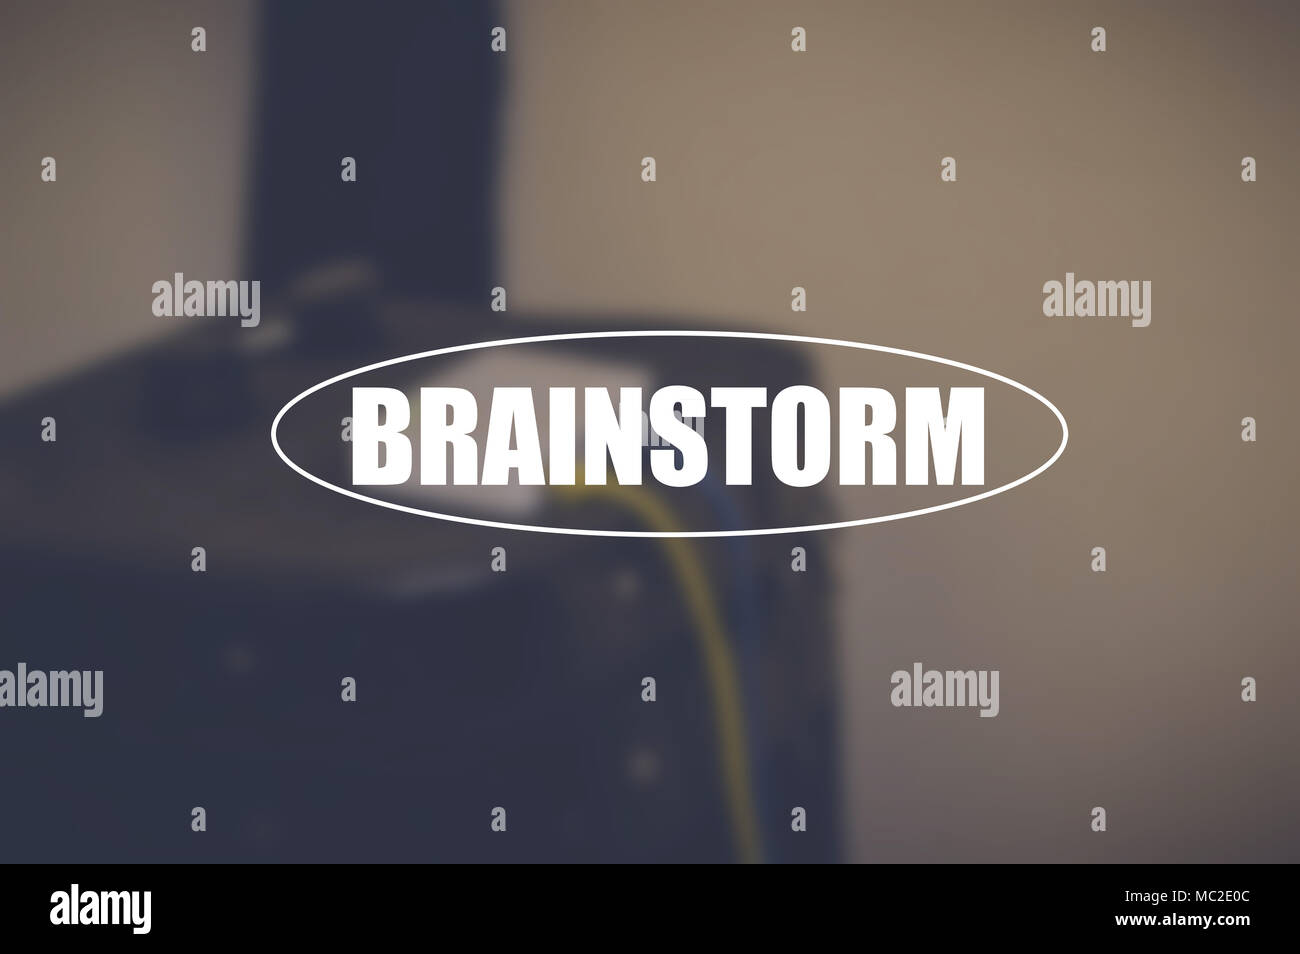 Brainstorm word with blurring background - Stock Image